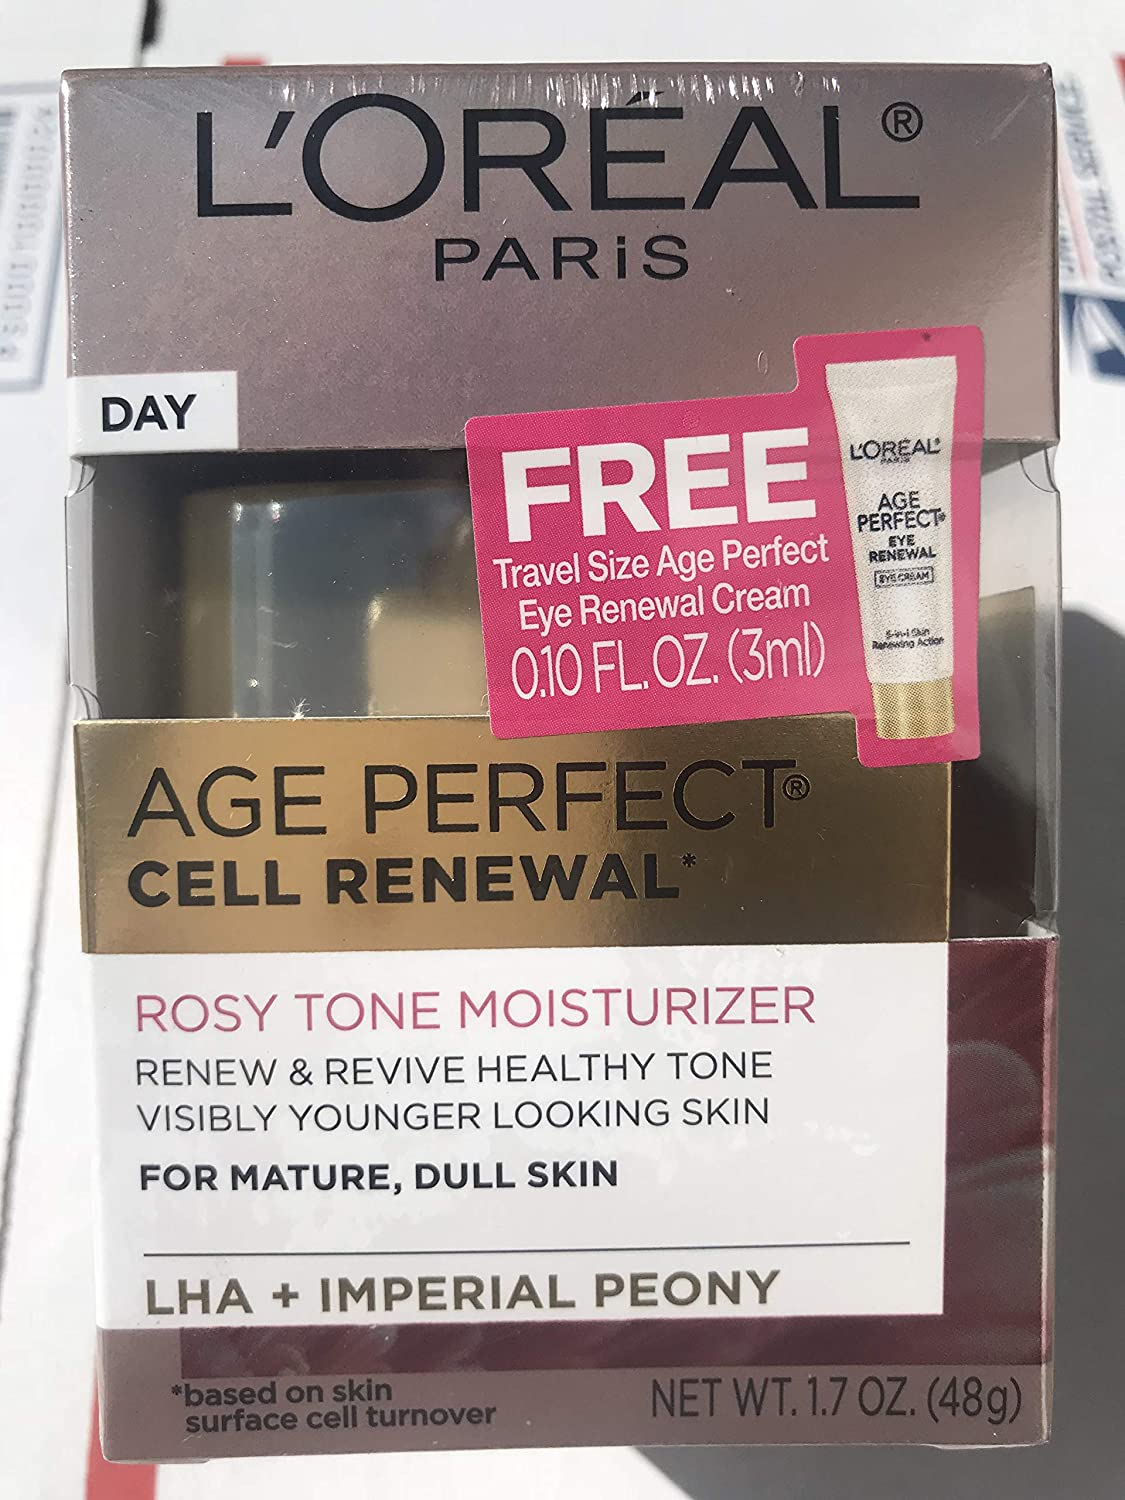 ????Premium Pack Age Perfect Cell Renewal Rosy Tone Face Moisturizer with LHA and Imperial Peony for Visibly Younger Looking Skin, Anti-Aging Day Cream for Face, Non-greasy, 1.7 oz.